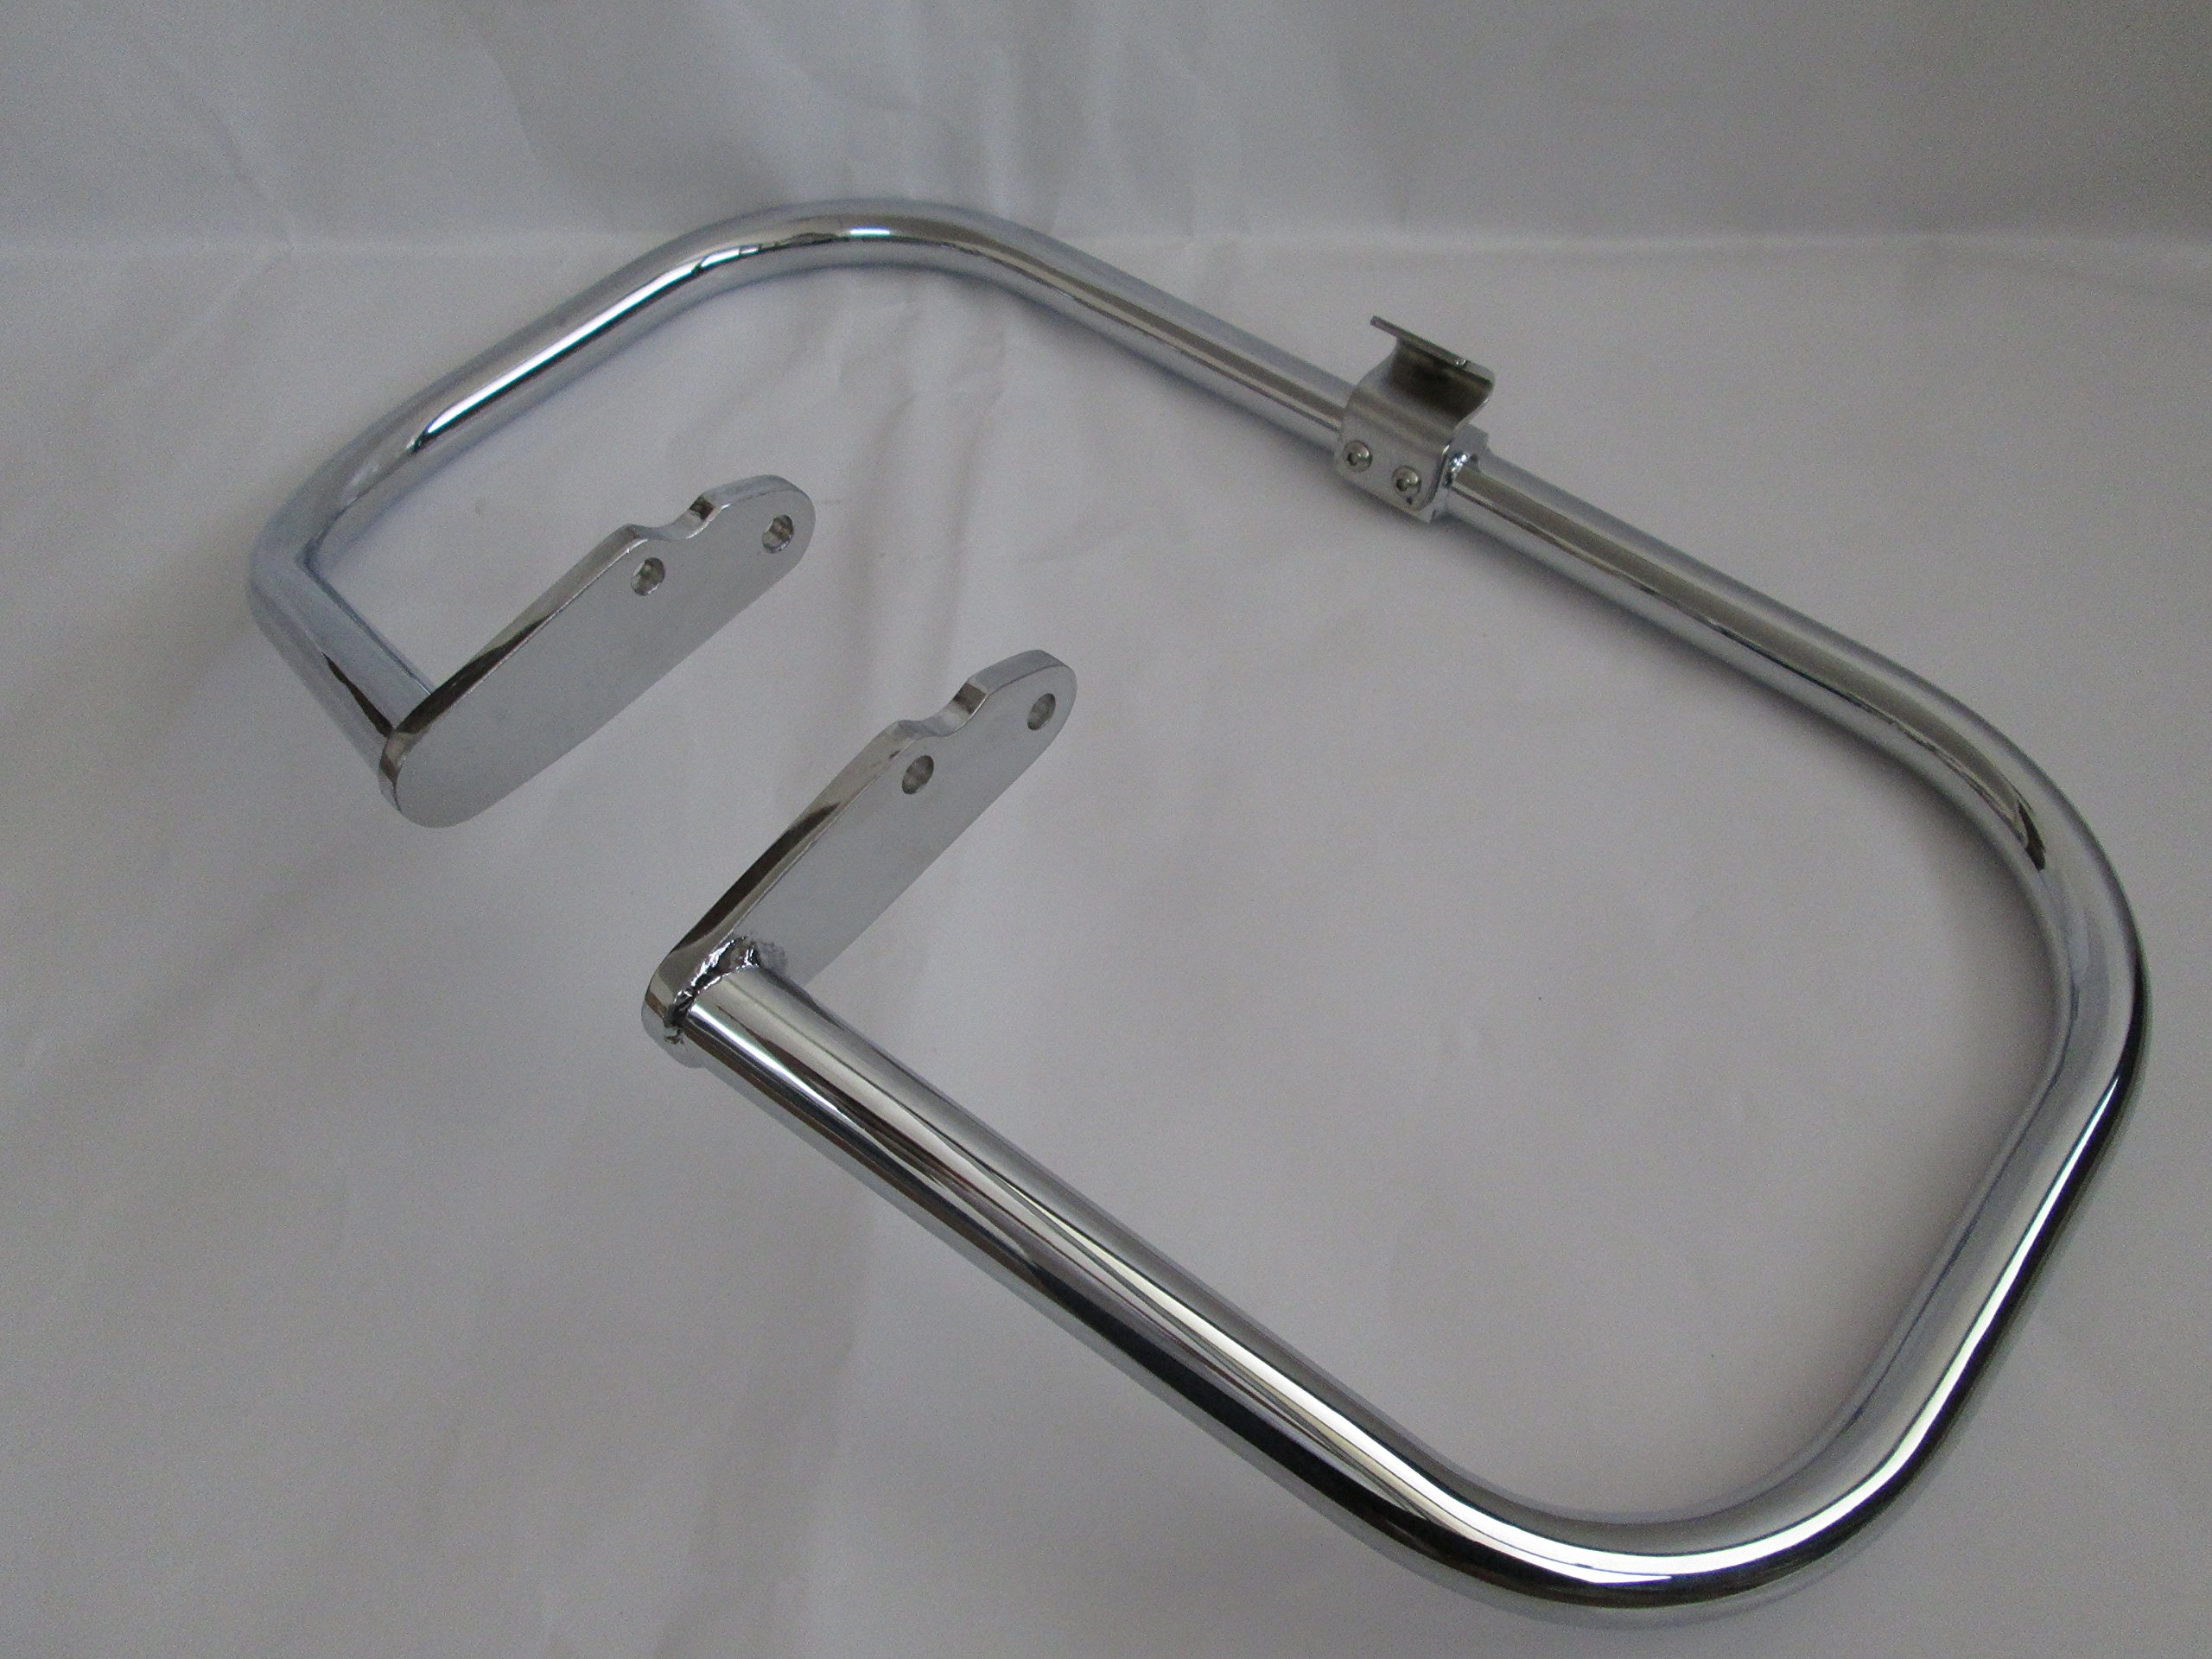 ENGINE GUARD HIGHWAY CRASH BAR YAMAHA ROADSTAR XV1600 XV1700 SILVERADO by USA (Image #3)